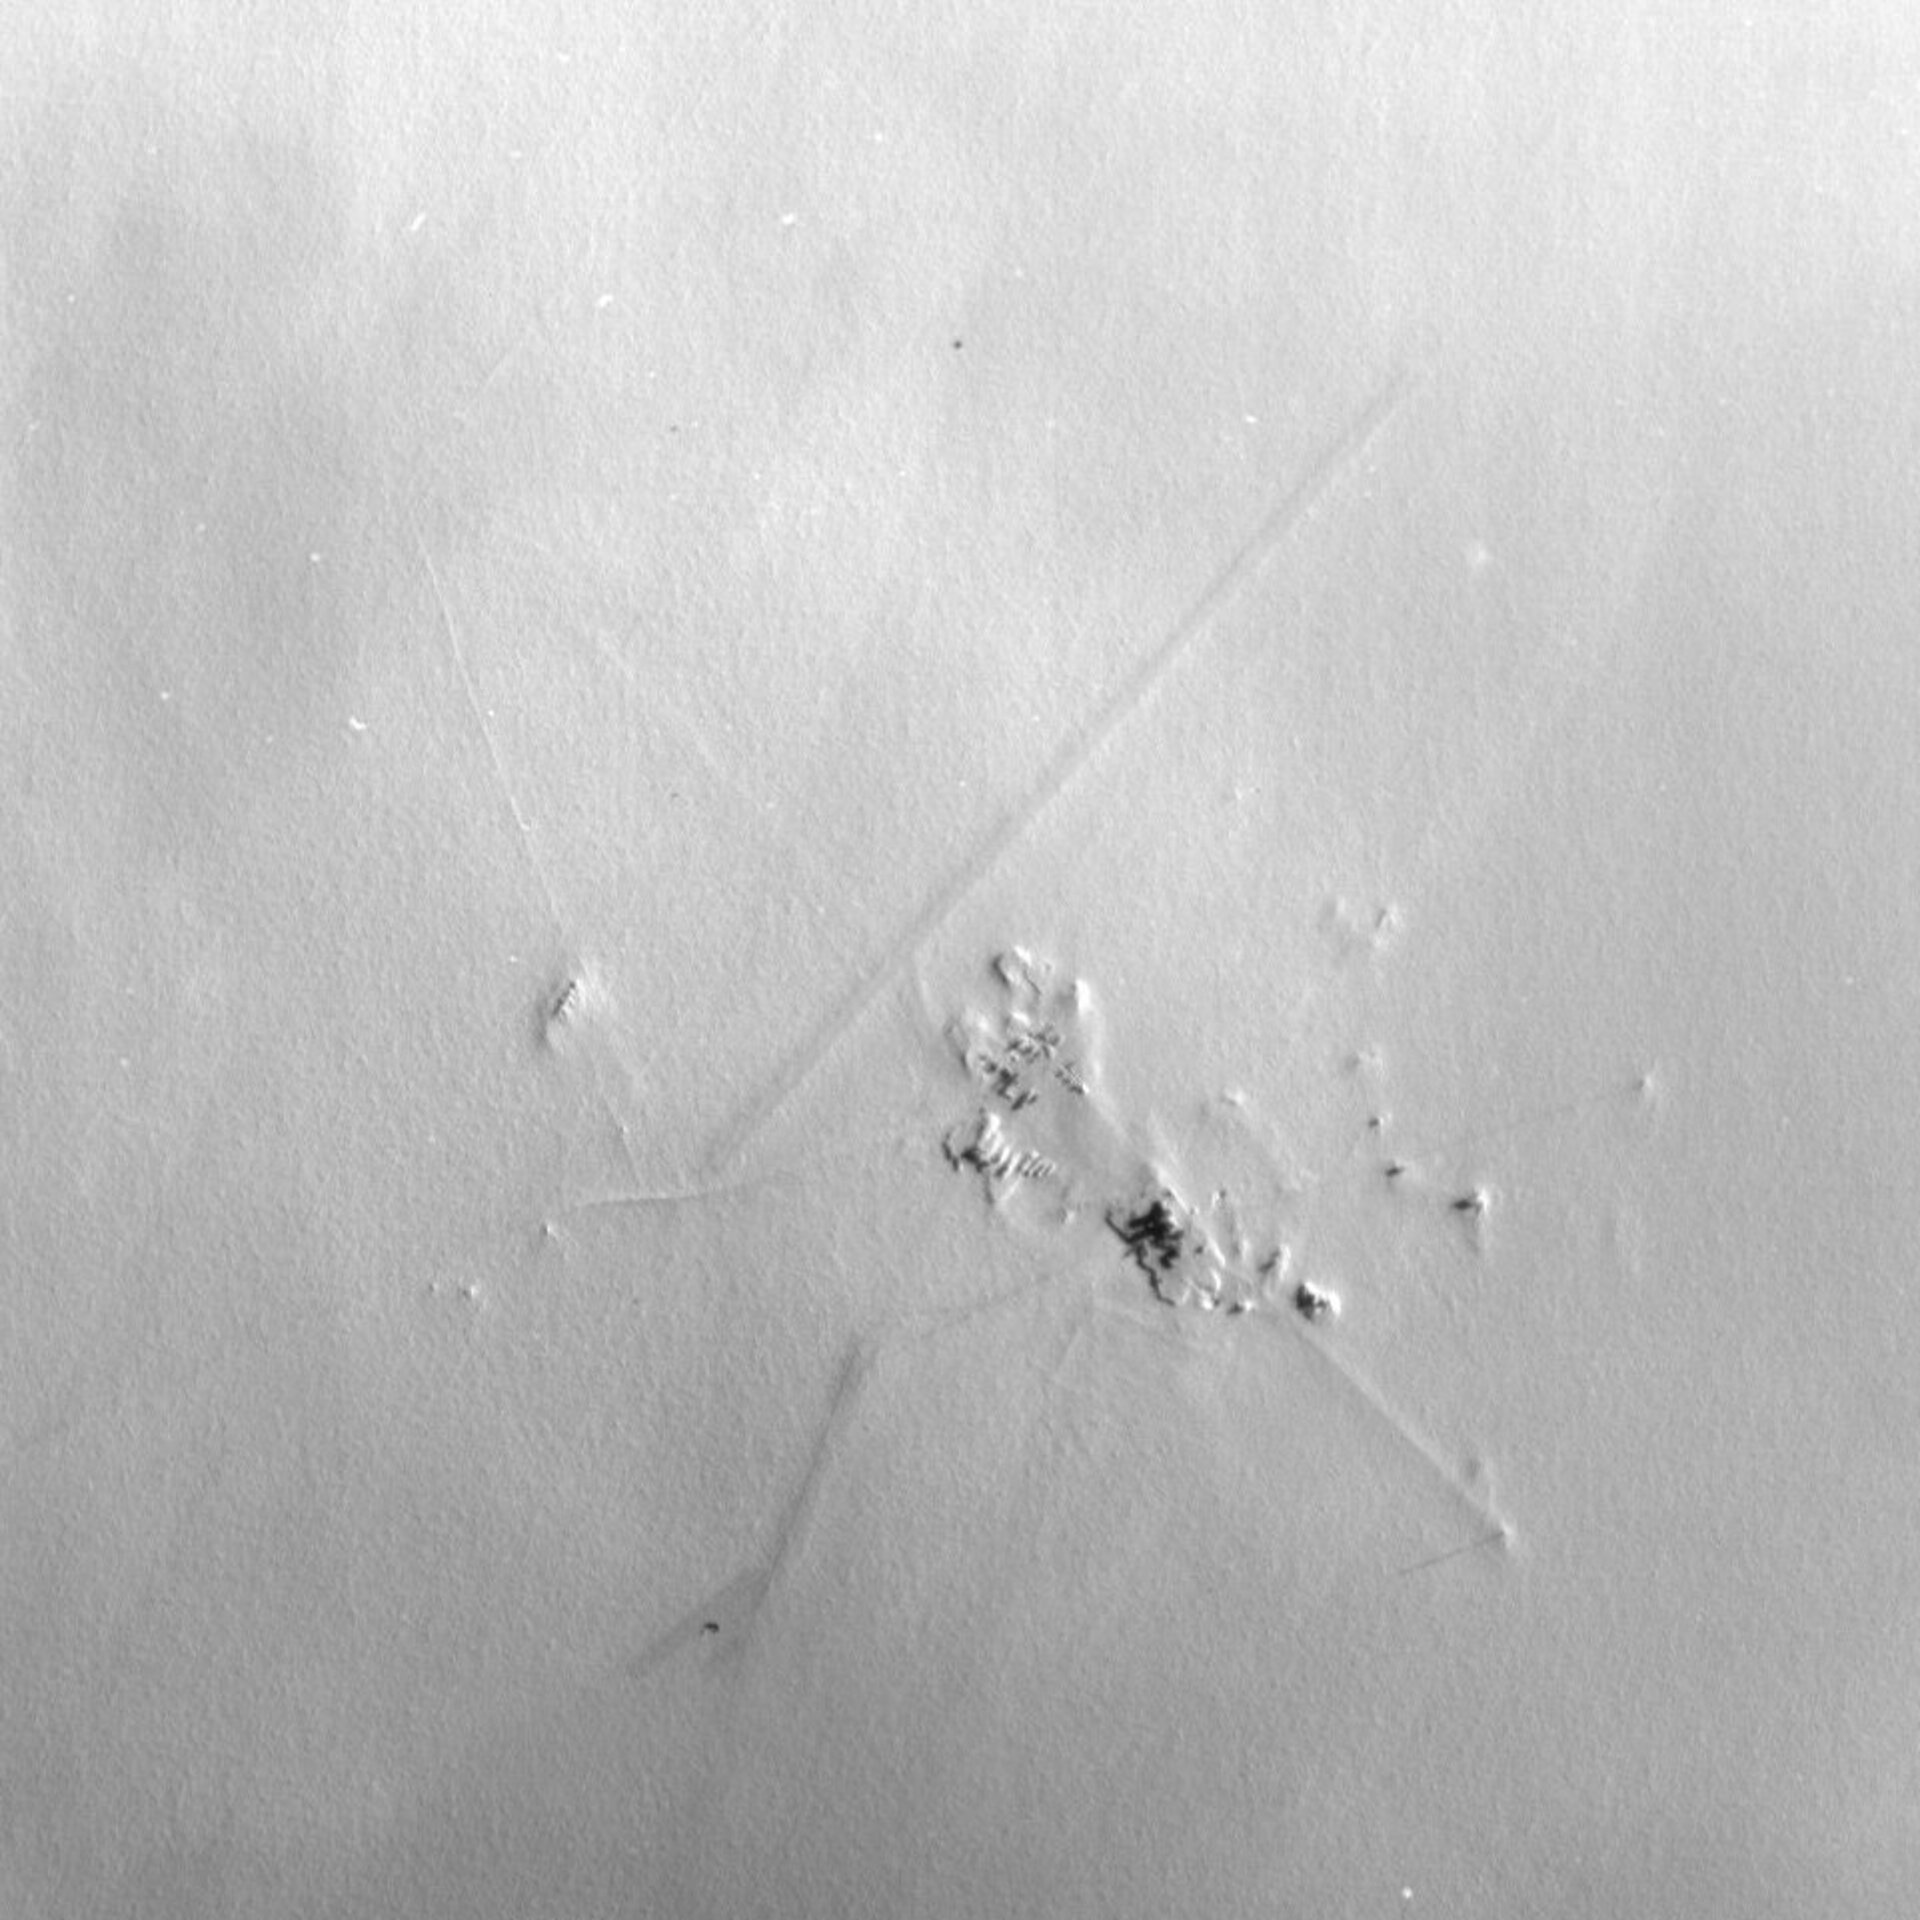 Proba-1 images Concordia base